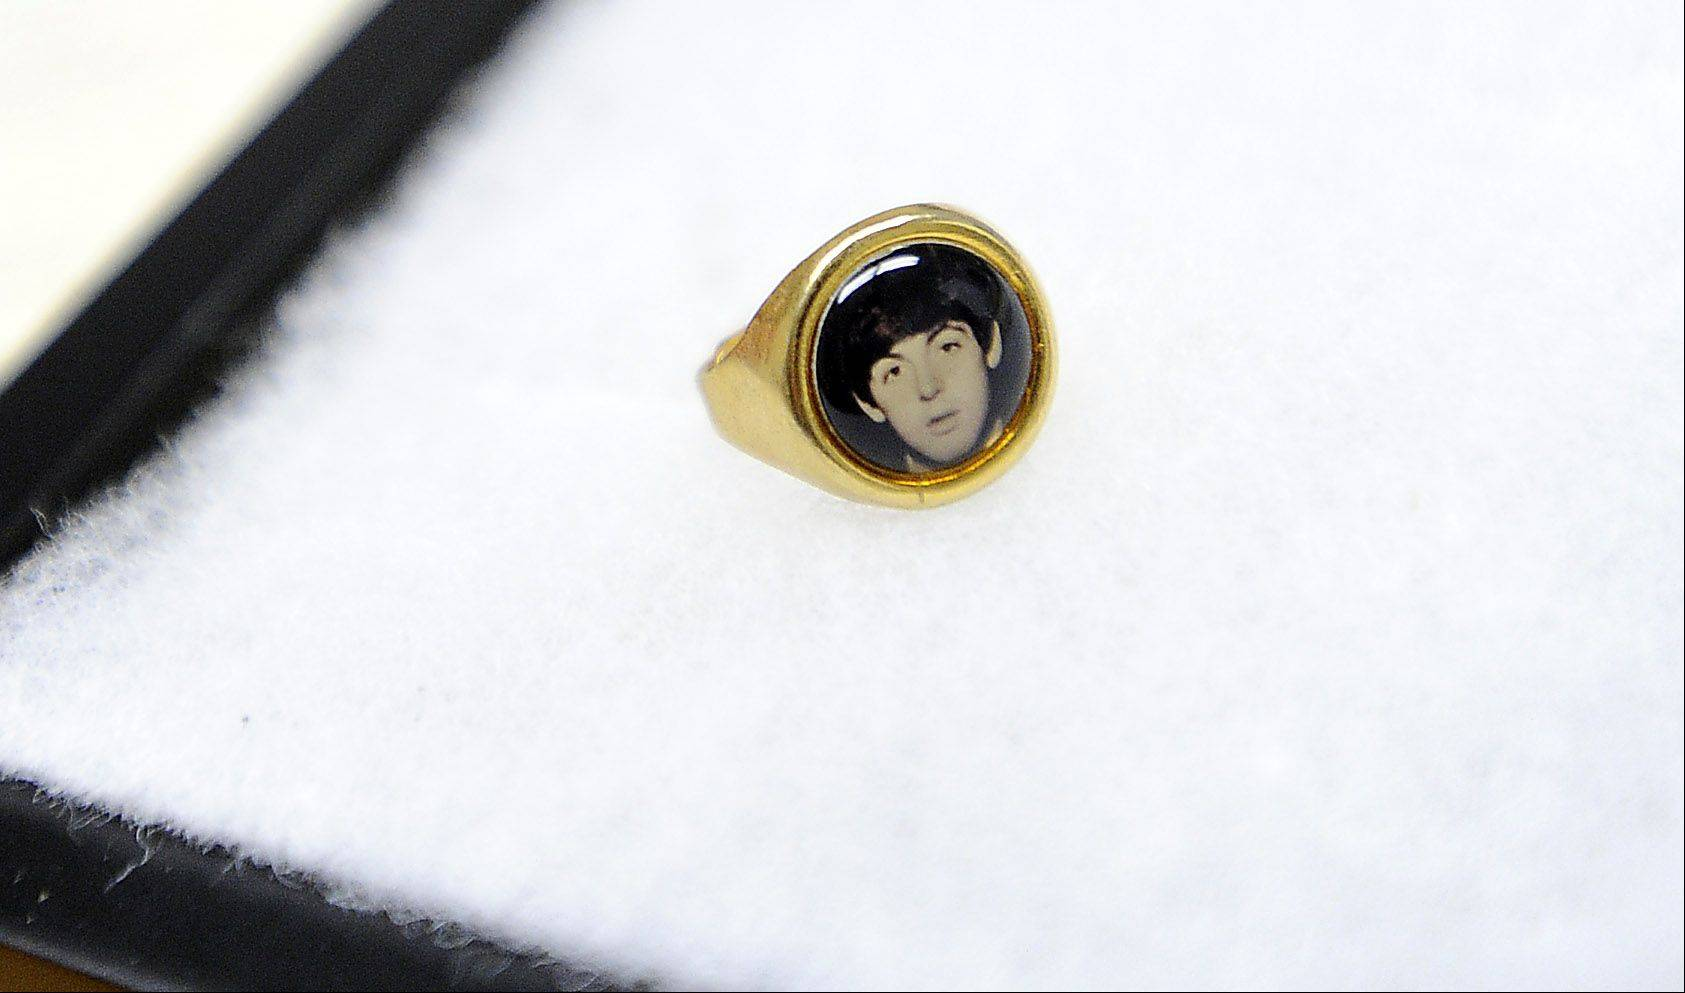 Perhaps the first band to grasp the value of mass marketing, The Beatles found their likenesses on many products, such as the Paul McCartney ring.